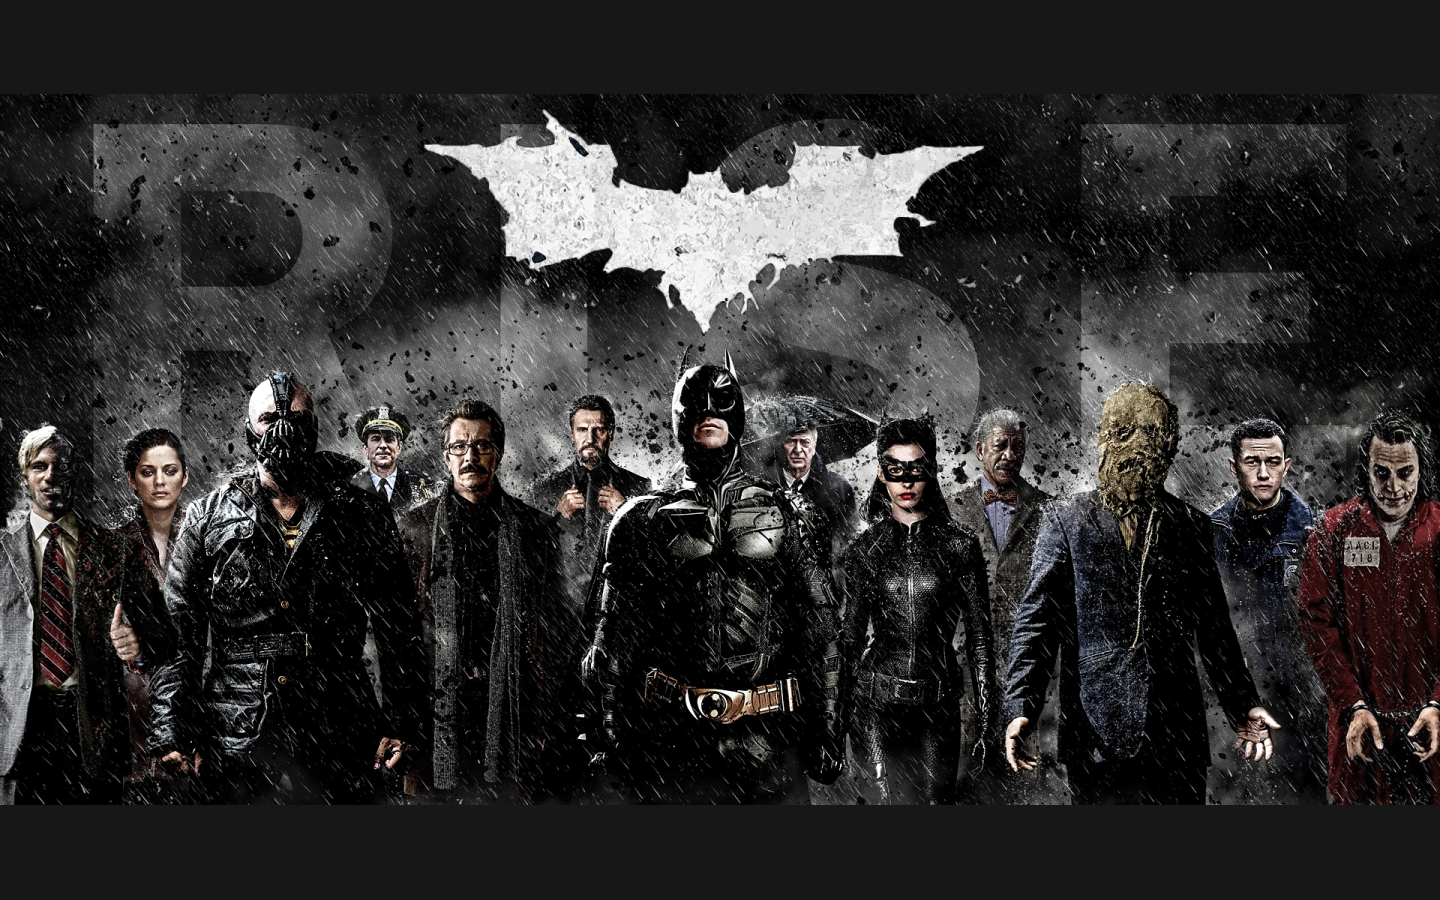 Andrewthedarkknighttoys Com The Dark Knight Rises New Fan Made